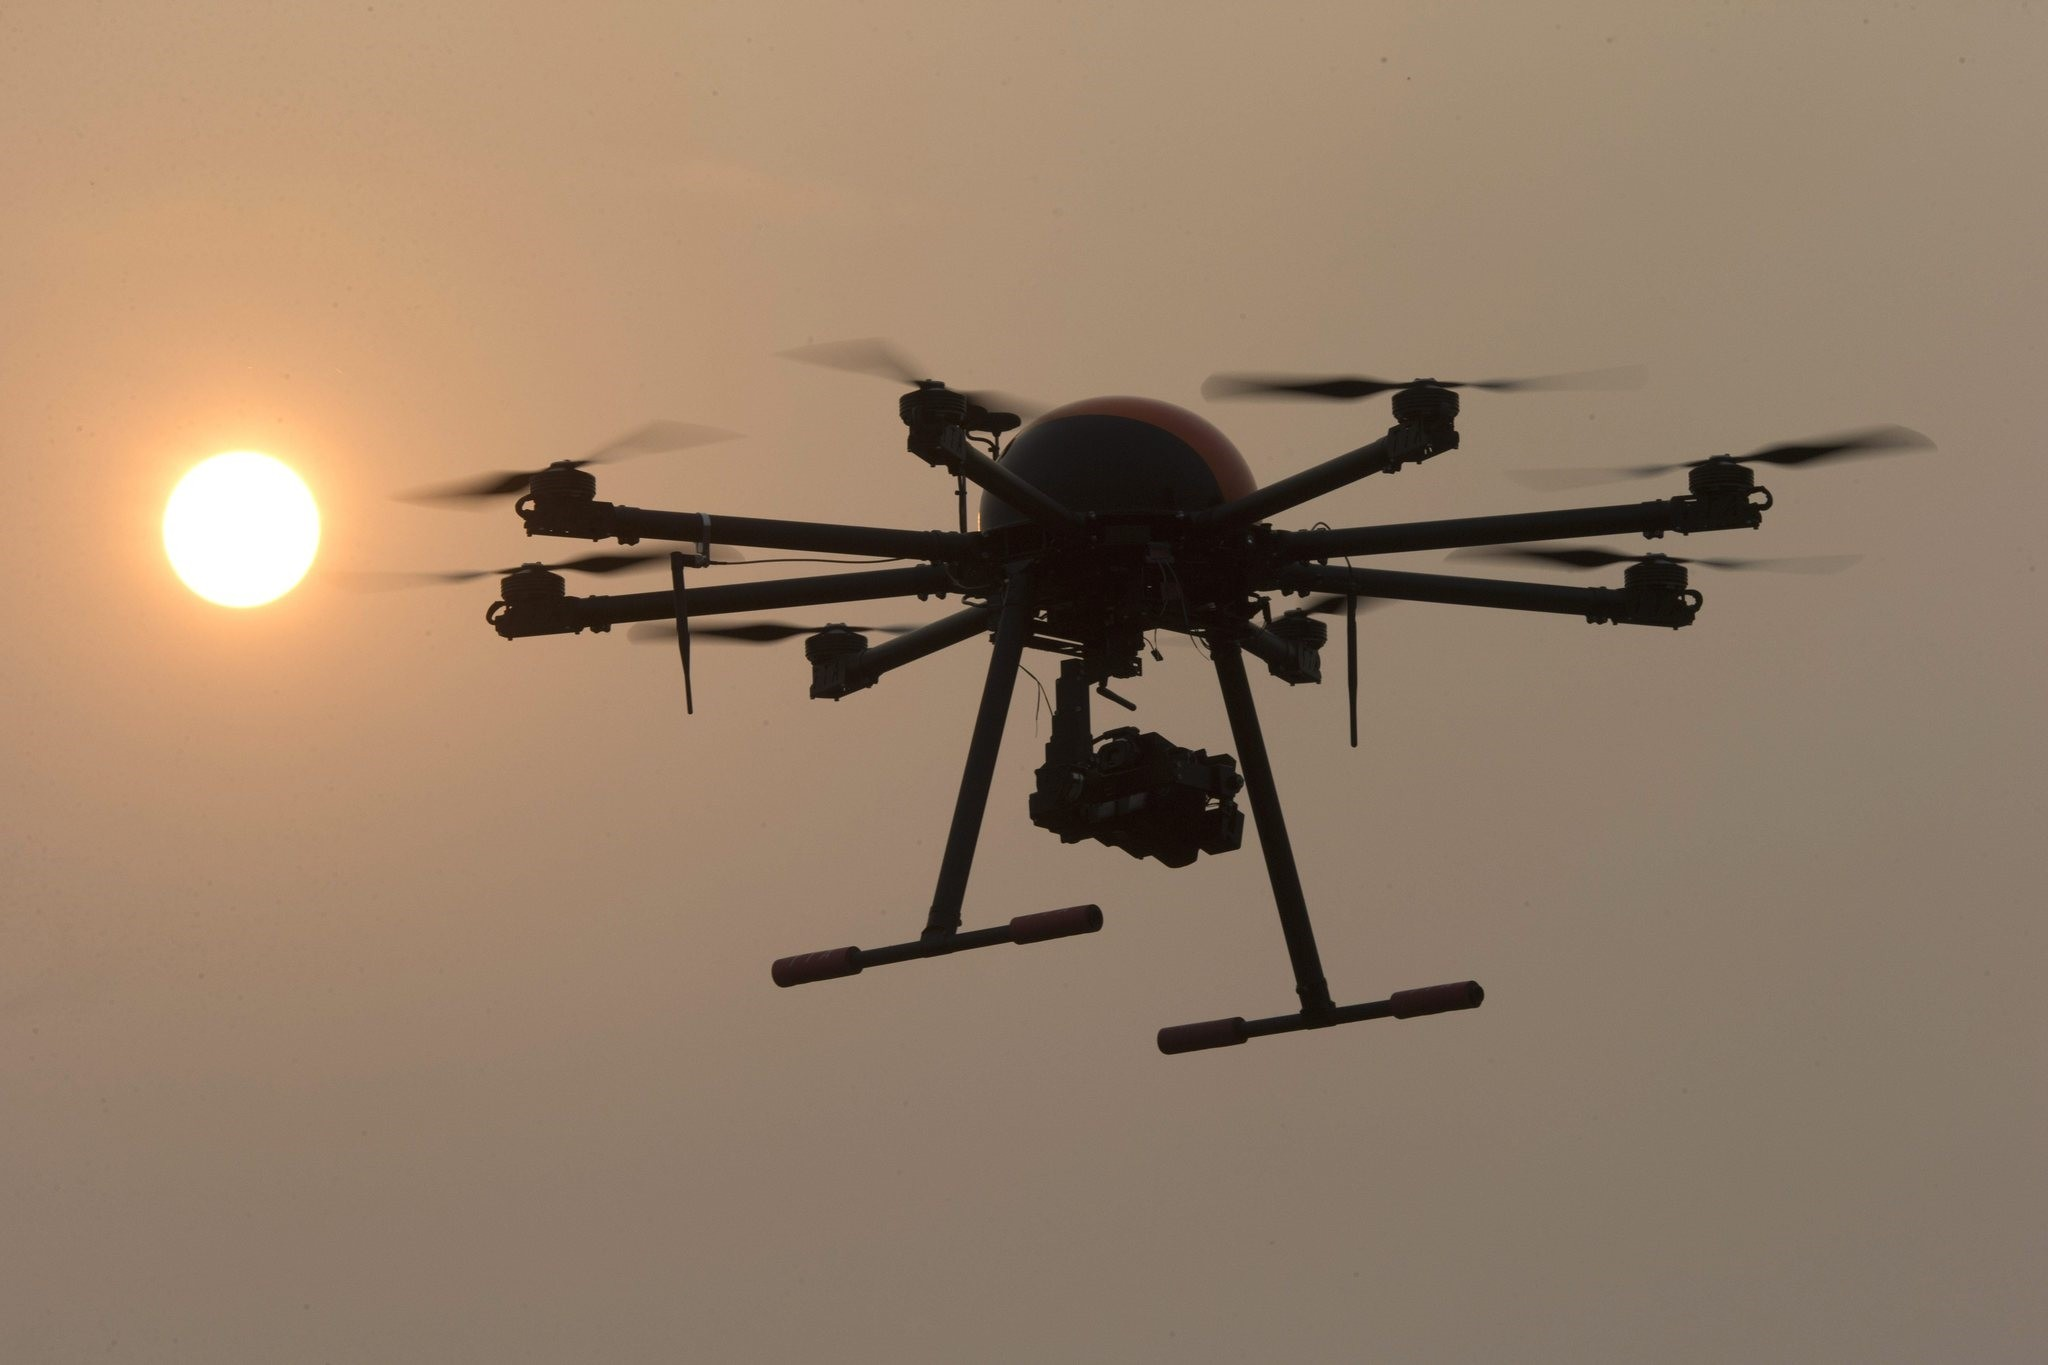 a drone hovers with the sun in the background near a school run by TT Aviation Technology in Beijing. (AP Photo)